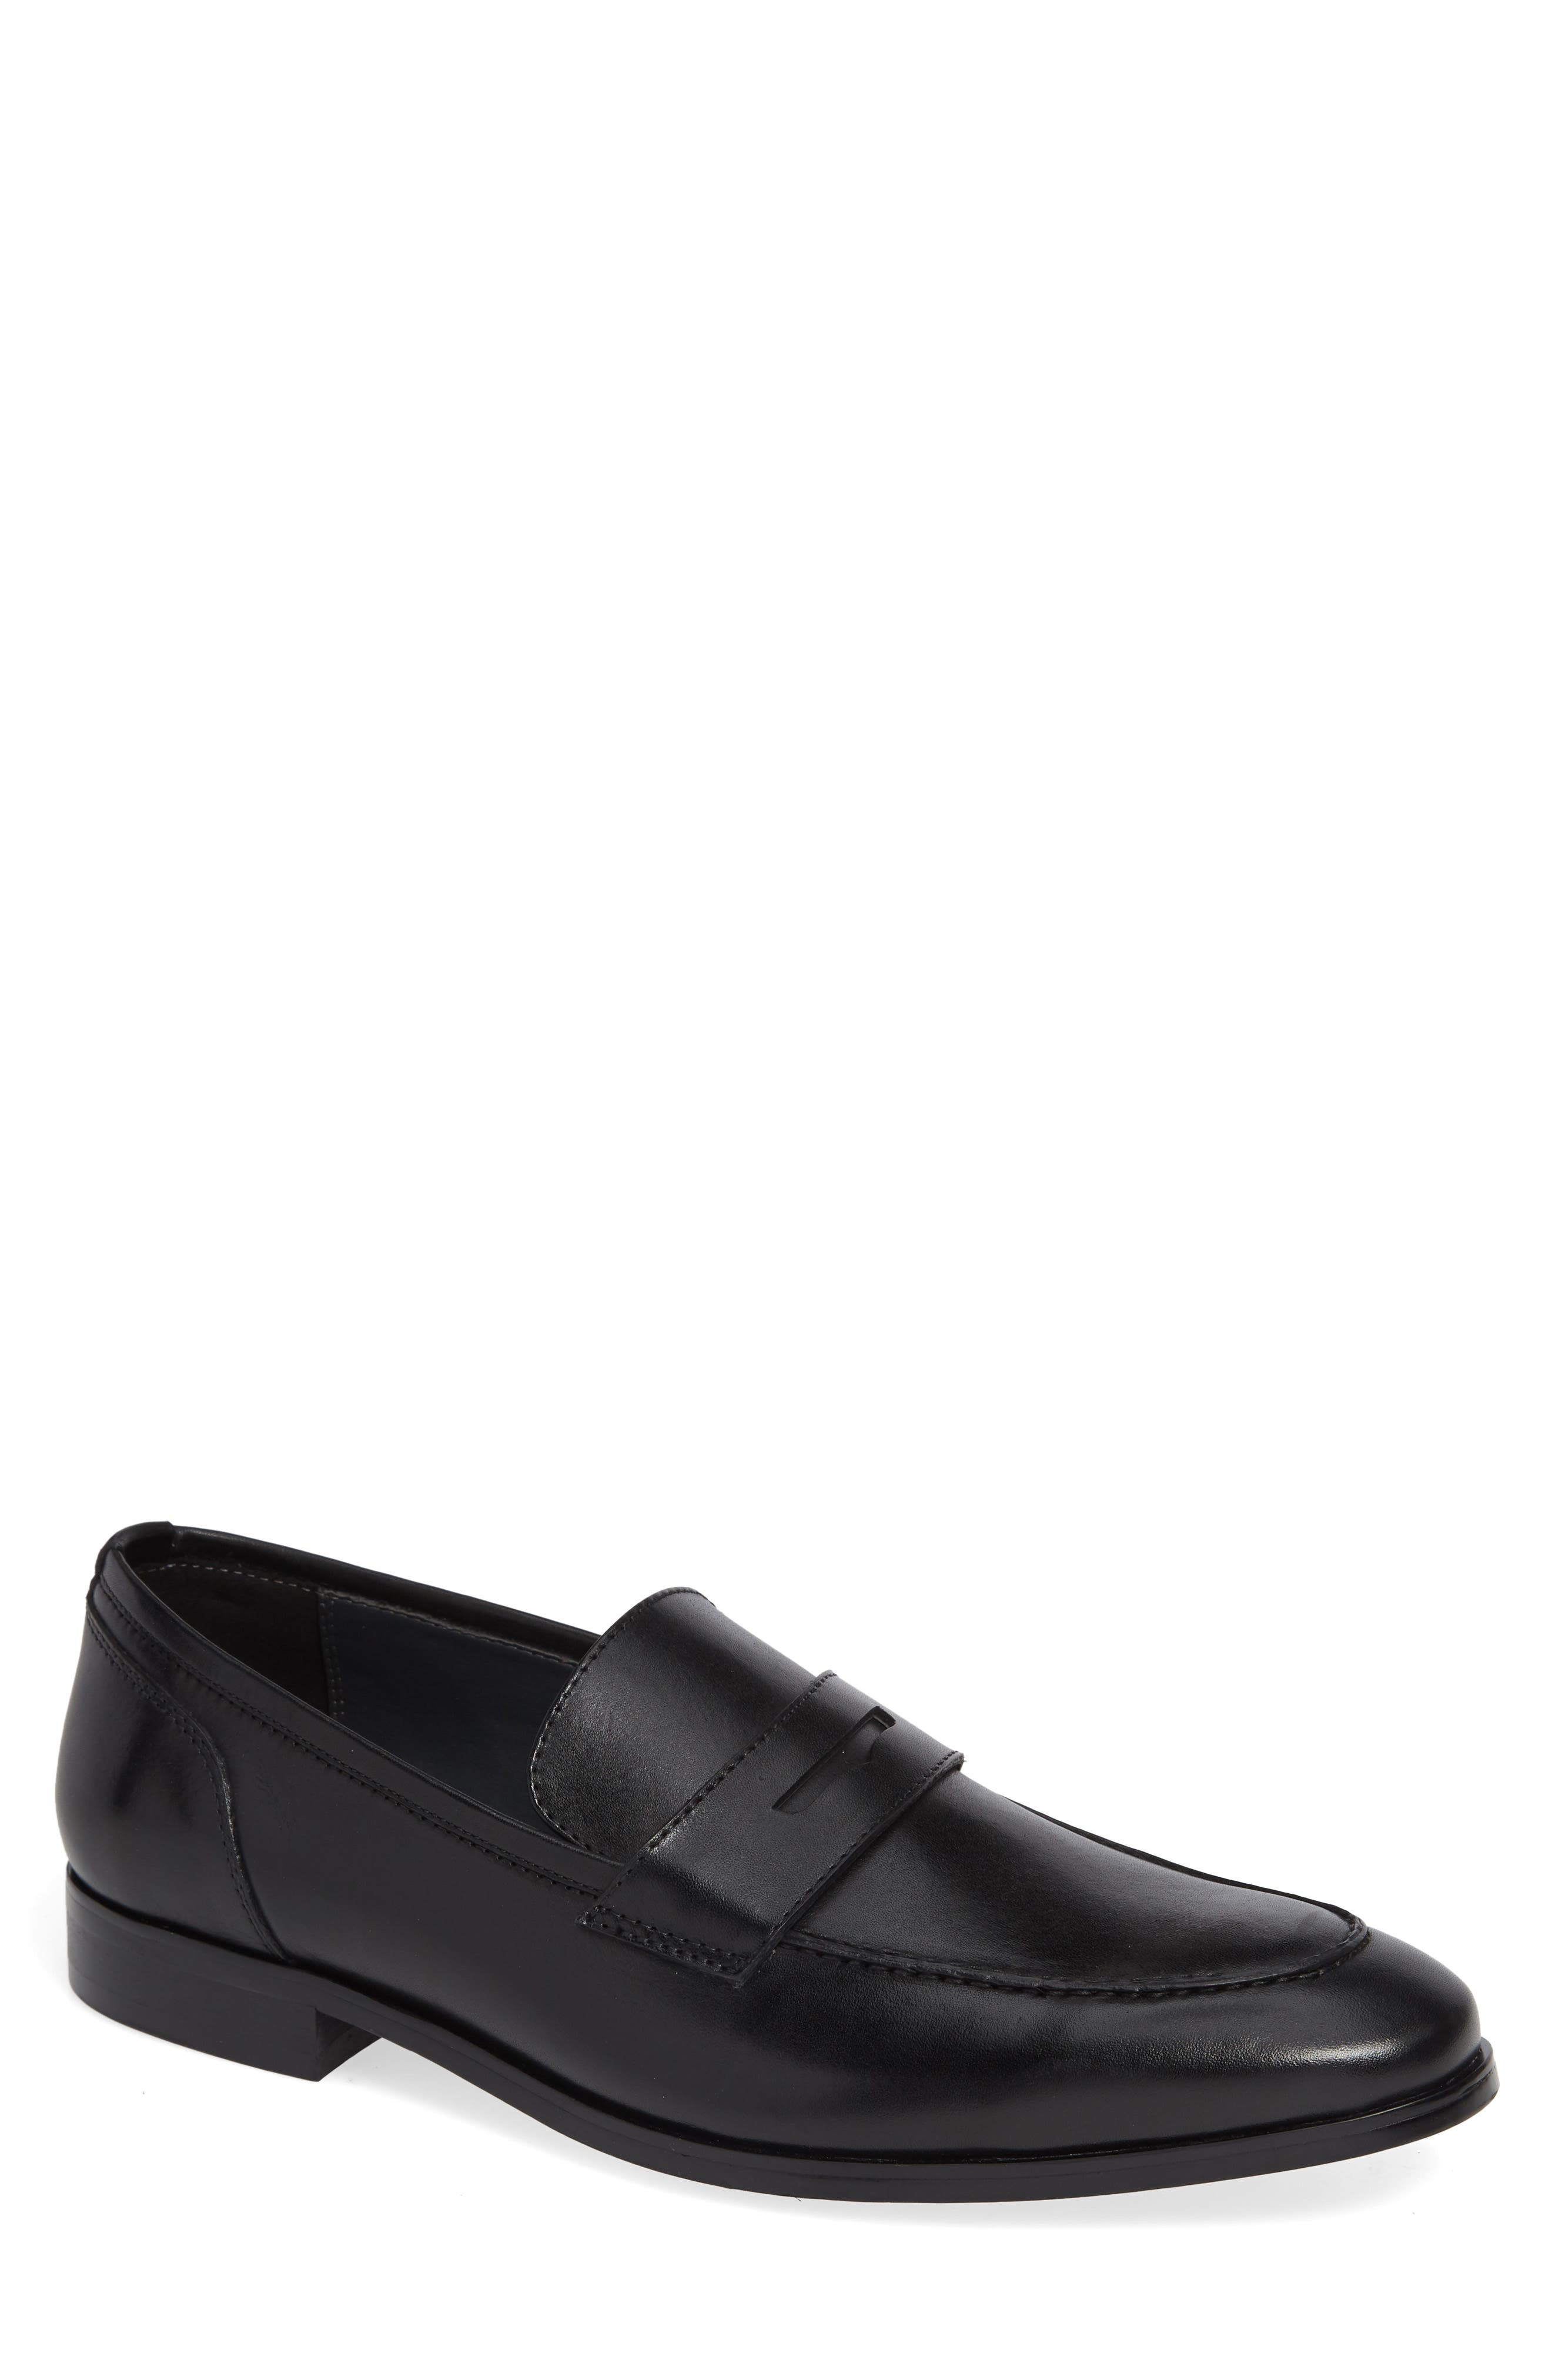 Denio Apron Toe Penny Loafer,                         Main,                         color, BLACK LEATHER